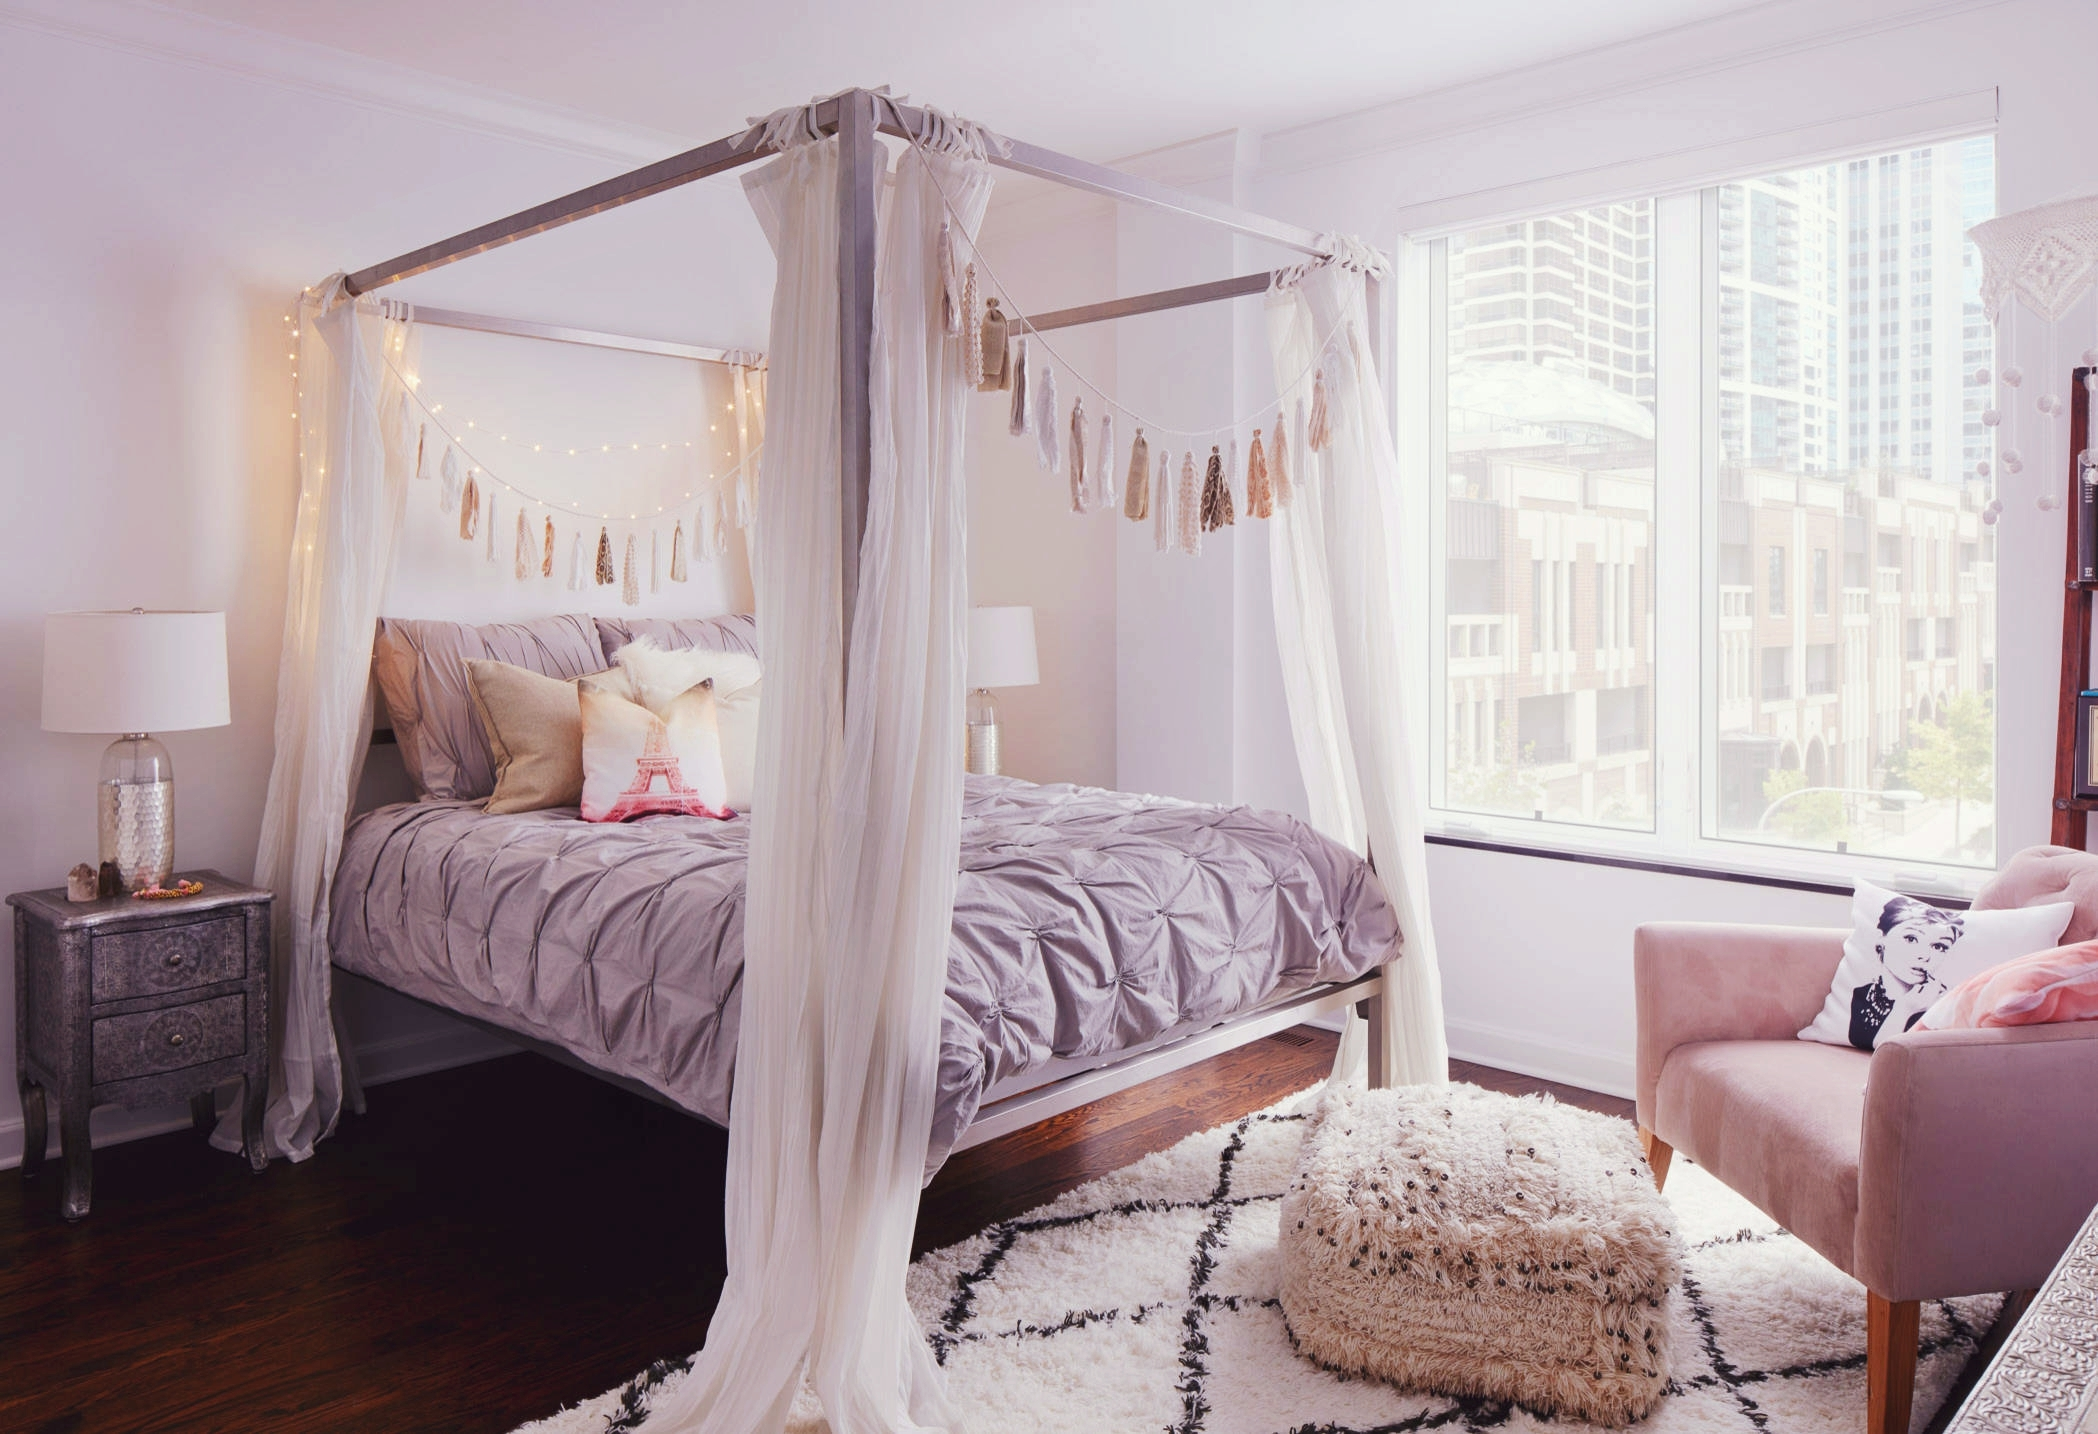 Curtains for bedroom 2016 - A Cozy Bohemian Nook With White Curtains Around The Bed Frame